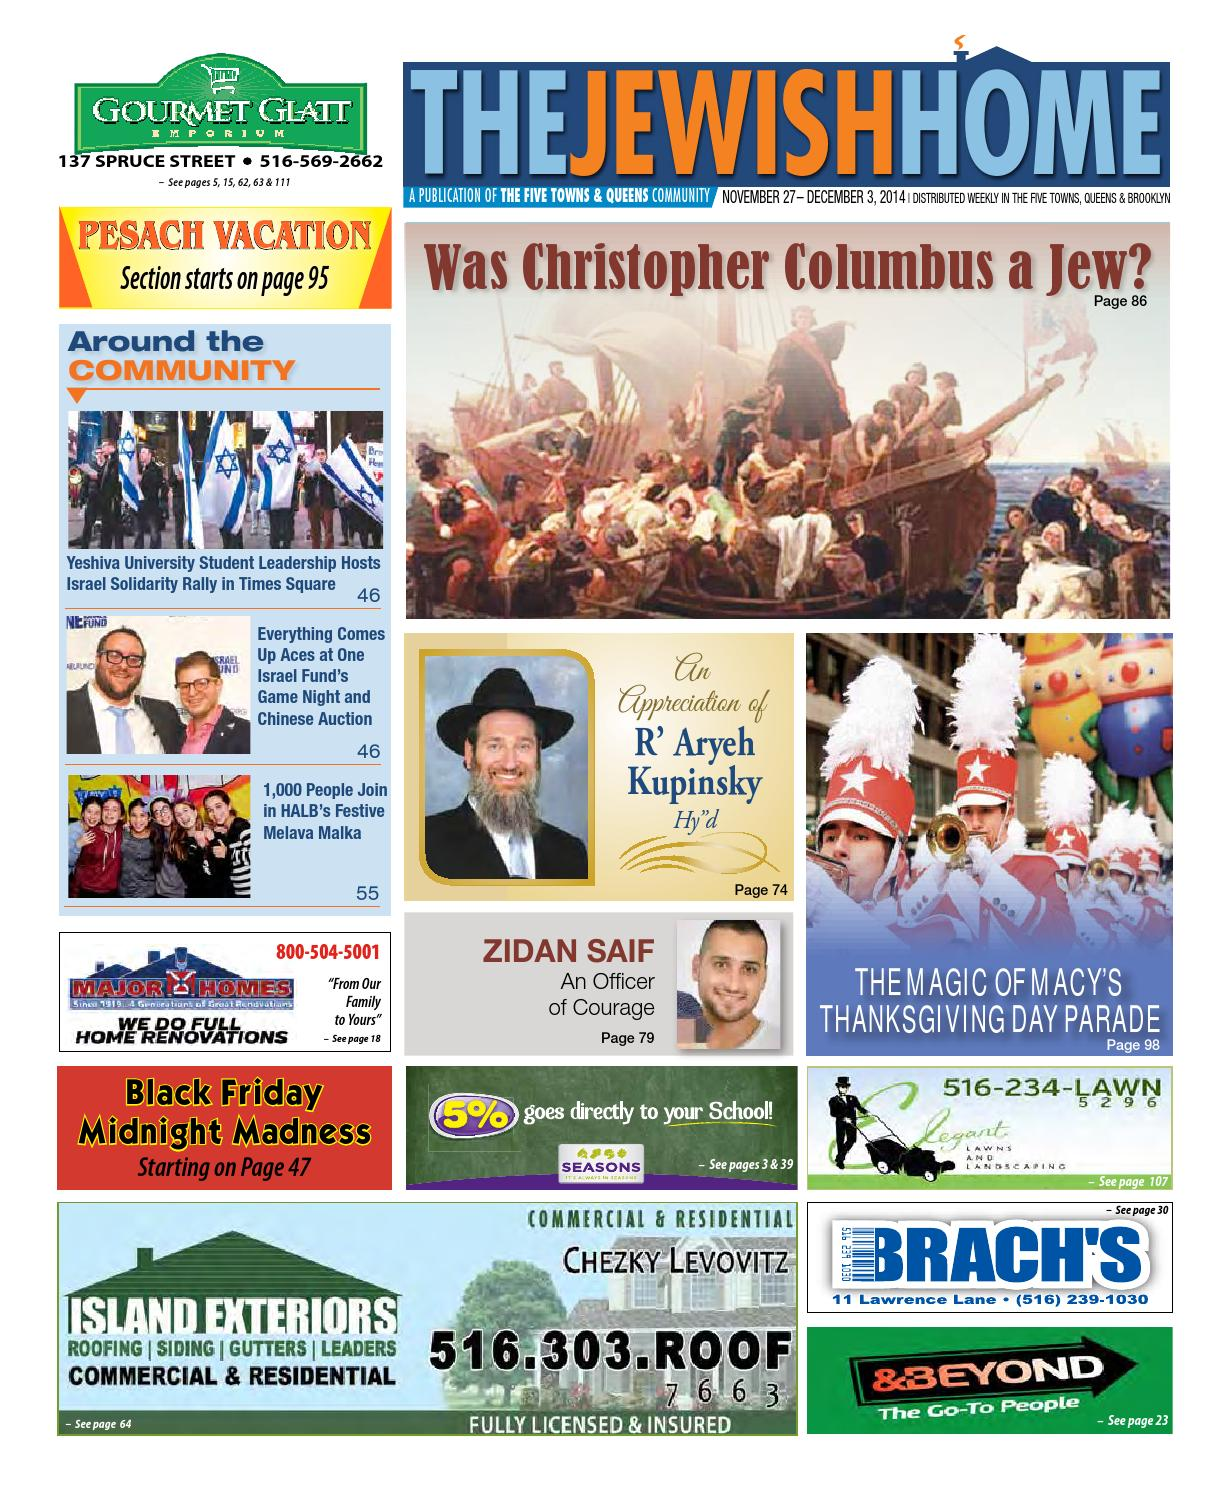 Five Towns Jewish Home 11-27-14 by Yitzy Halpern - issuu